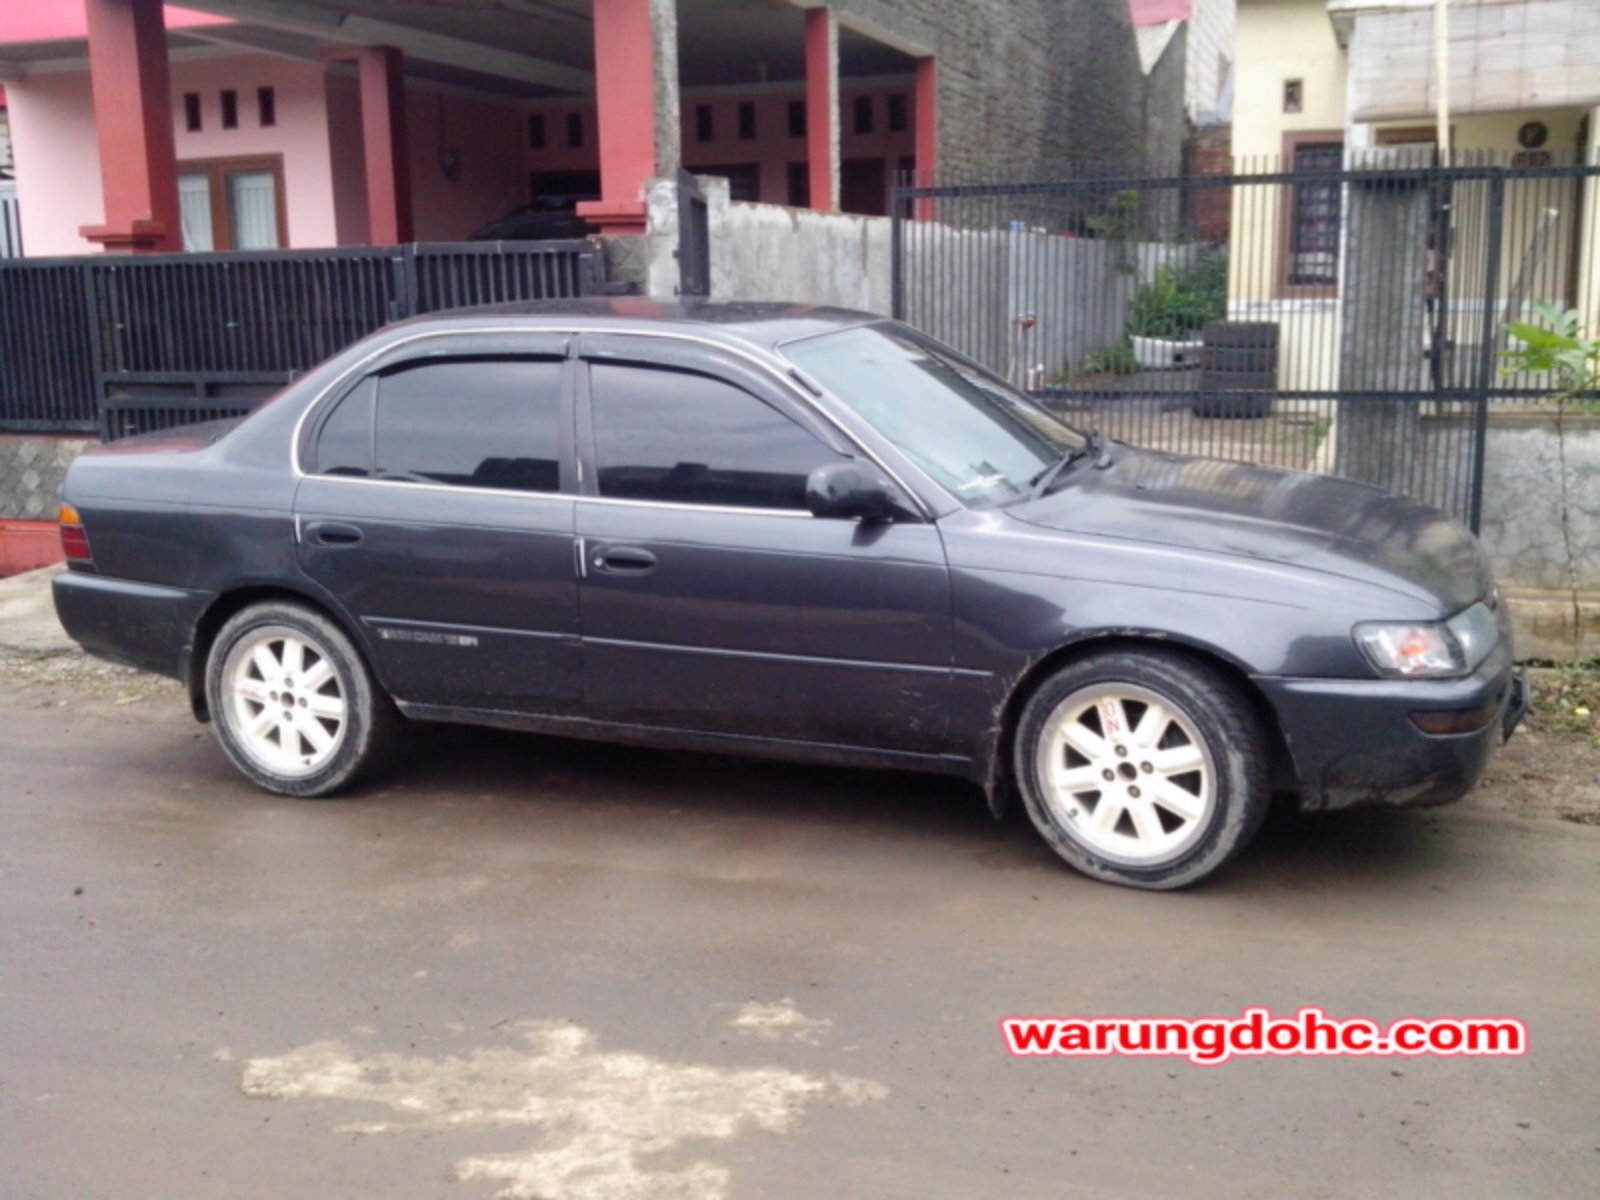 Modifikasi Toyota All New Corolla 2000